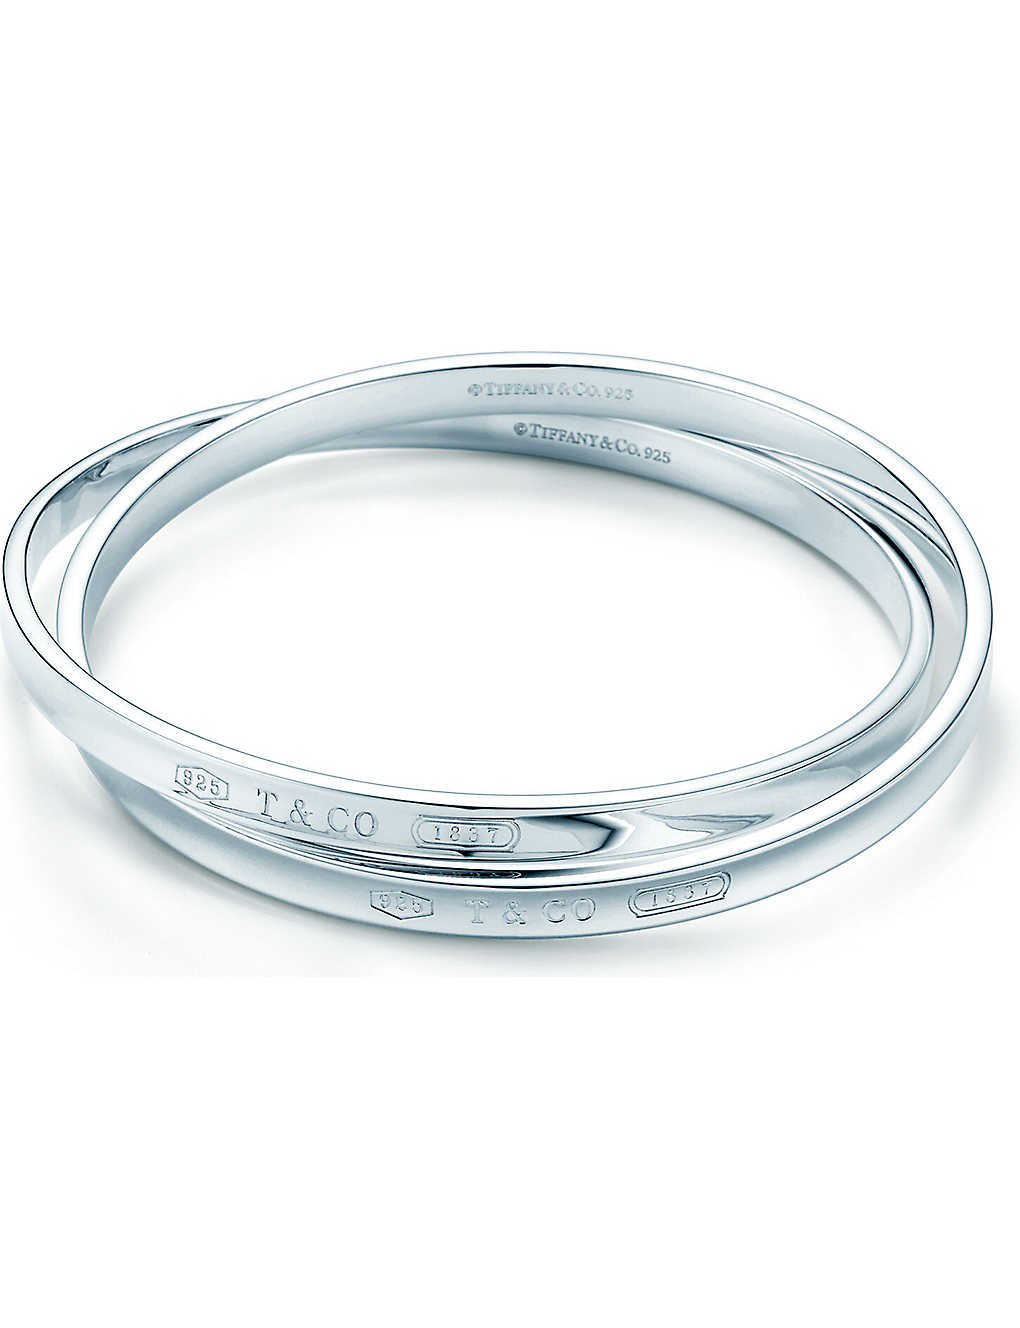 fdda395b9 TIFFANY & CO - Tiffany 1837 interlocking circles bangle in sterling ...